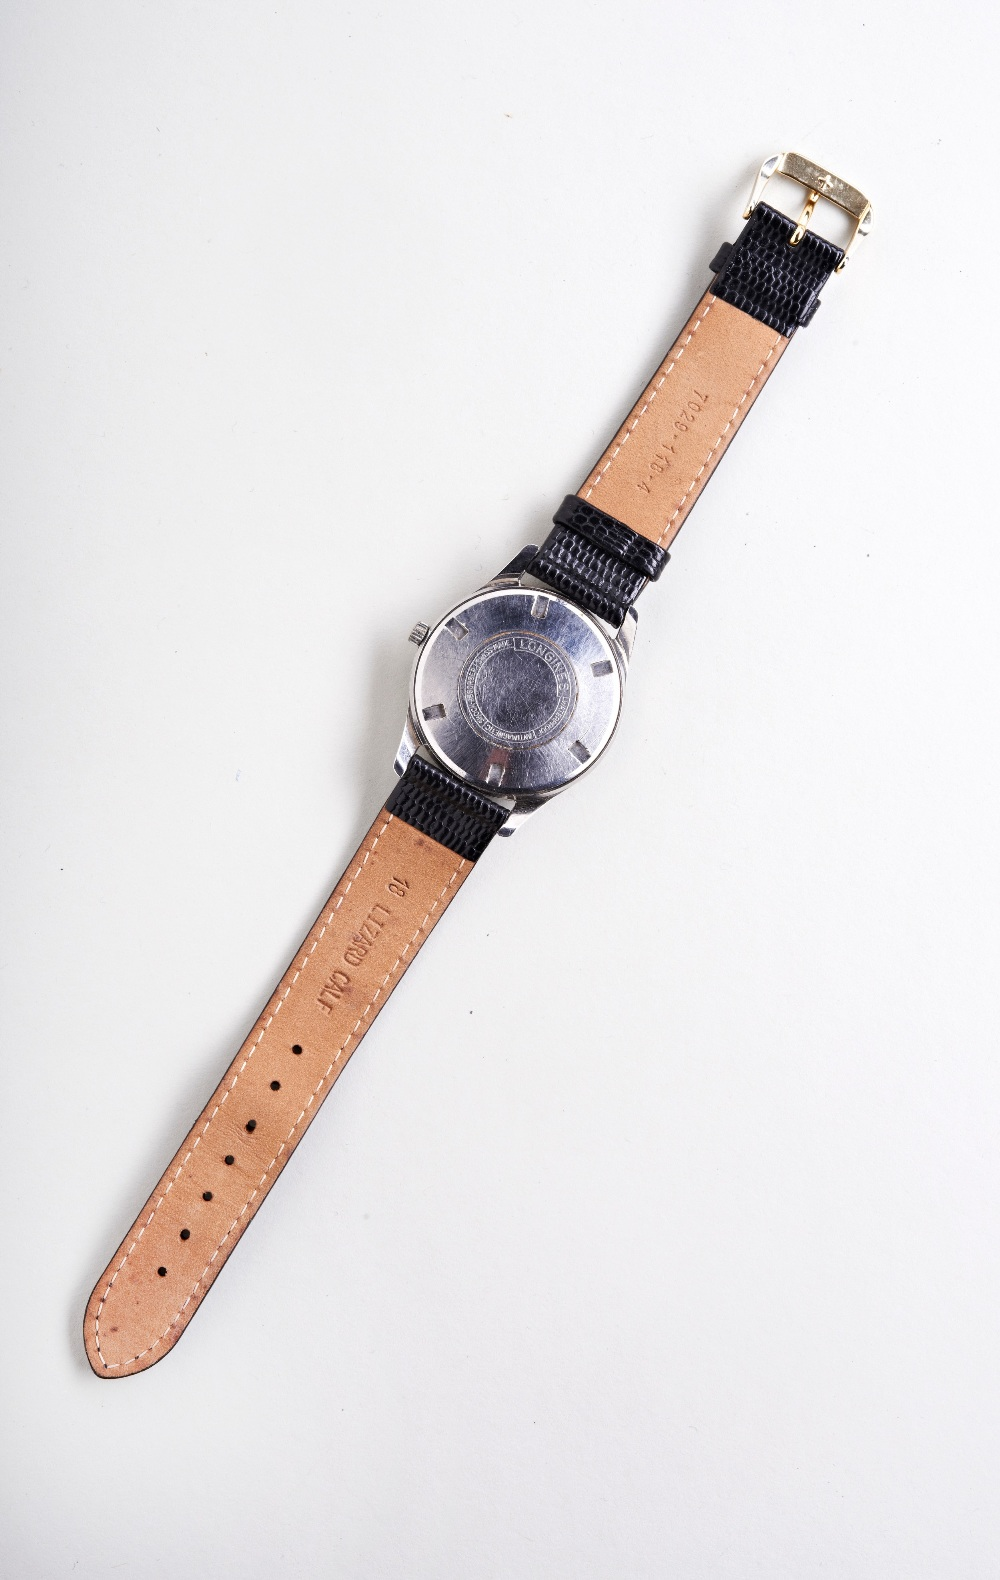 LONGINES STEEL WRISTWATCH, c1960, silver dial with Arabic and baton numerals and later lizard/calf - Image 3 of 3